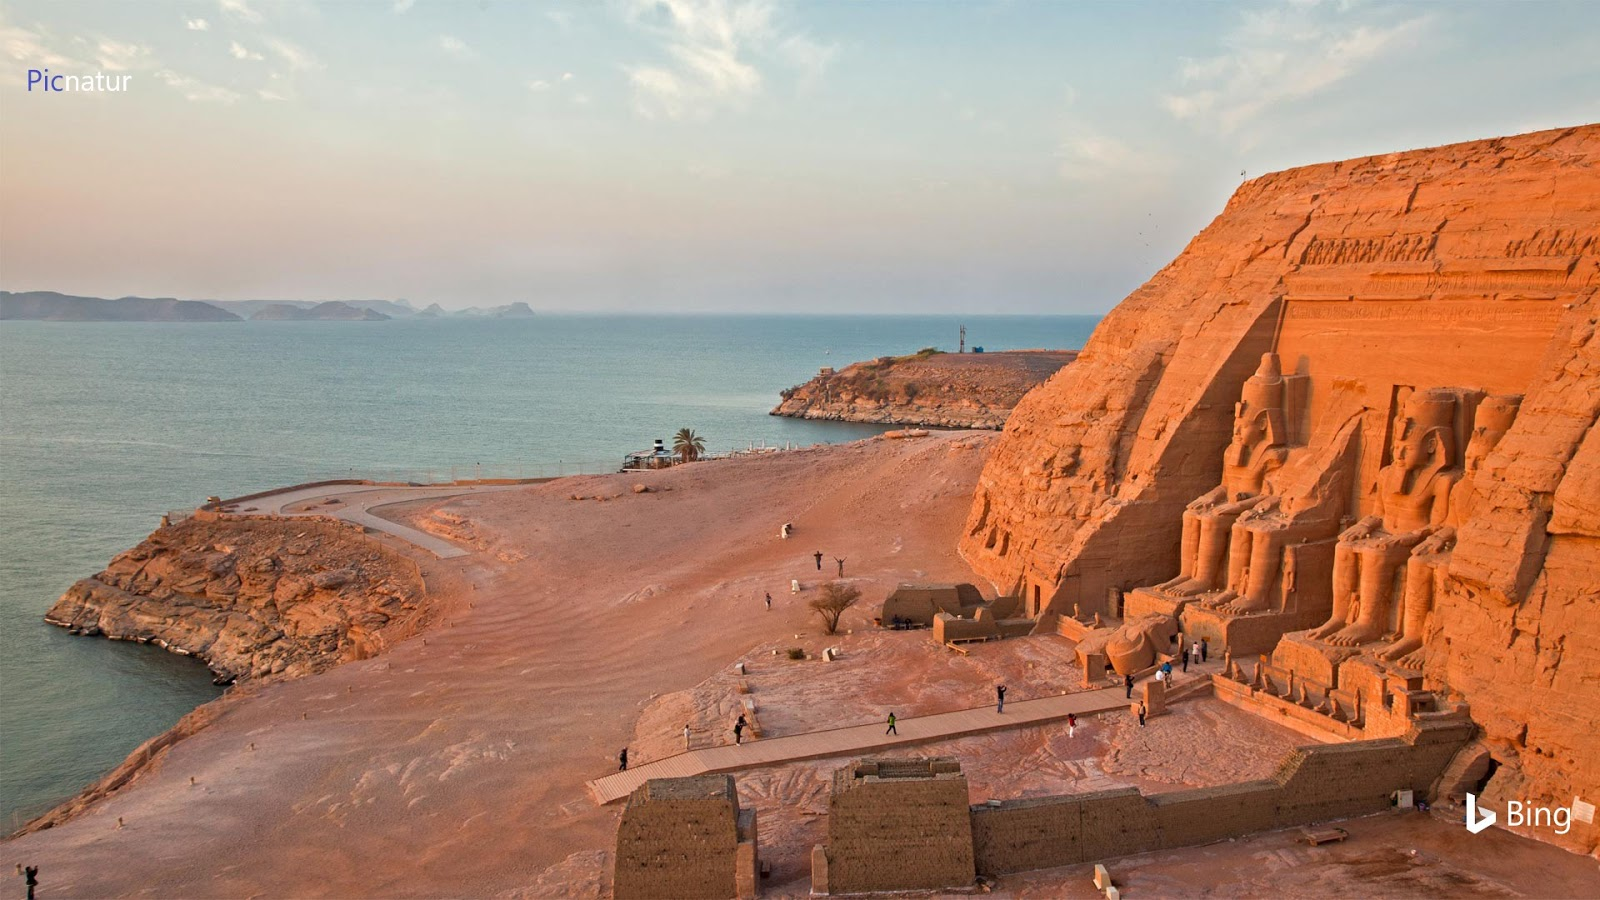 The Abu Simbel temples on the west shore of Lake Nasser, Egypt © George Steinmetz/Getty Images